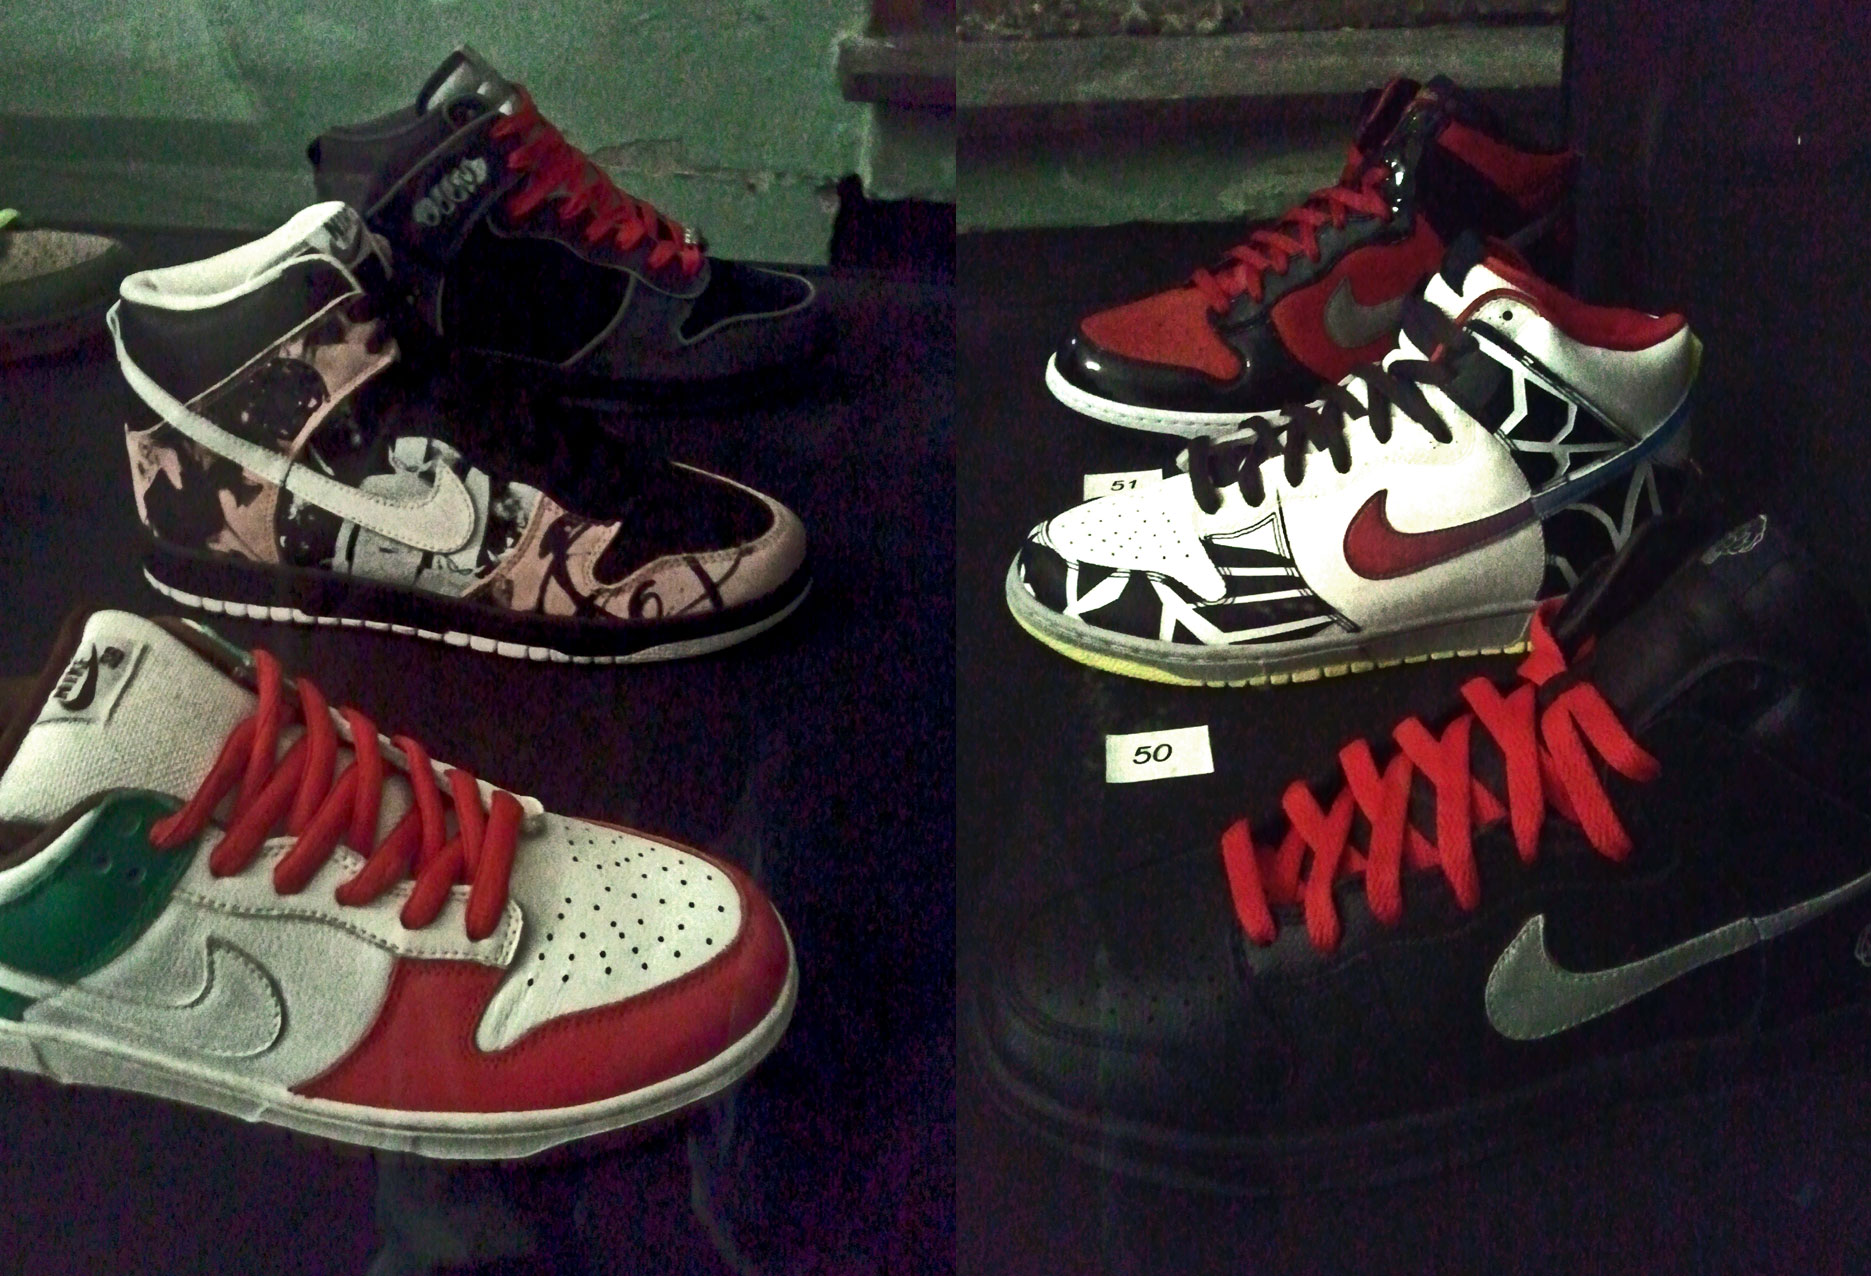 Dunk Low Pro SB Cinco de mayo, Dunk High Pro SB DUNKLE, Dunk High Pro SB MF Doom, other 3: untitled